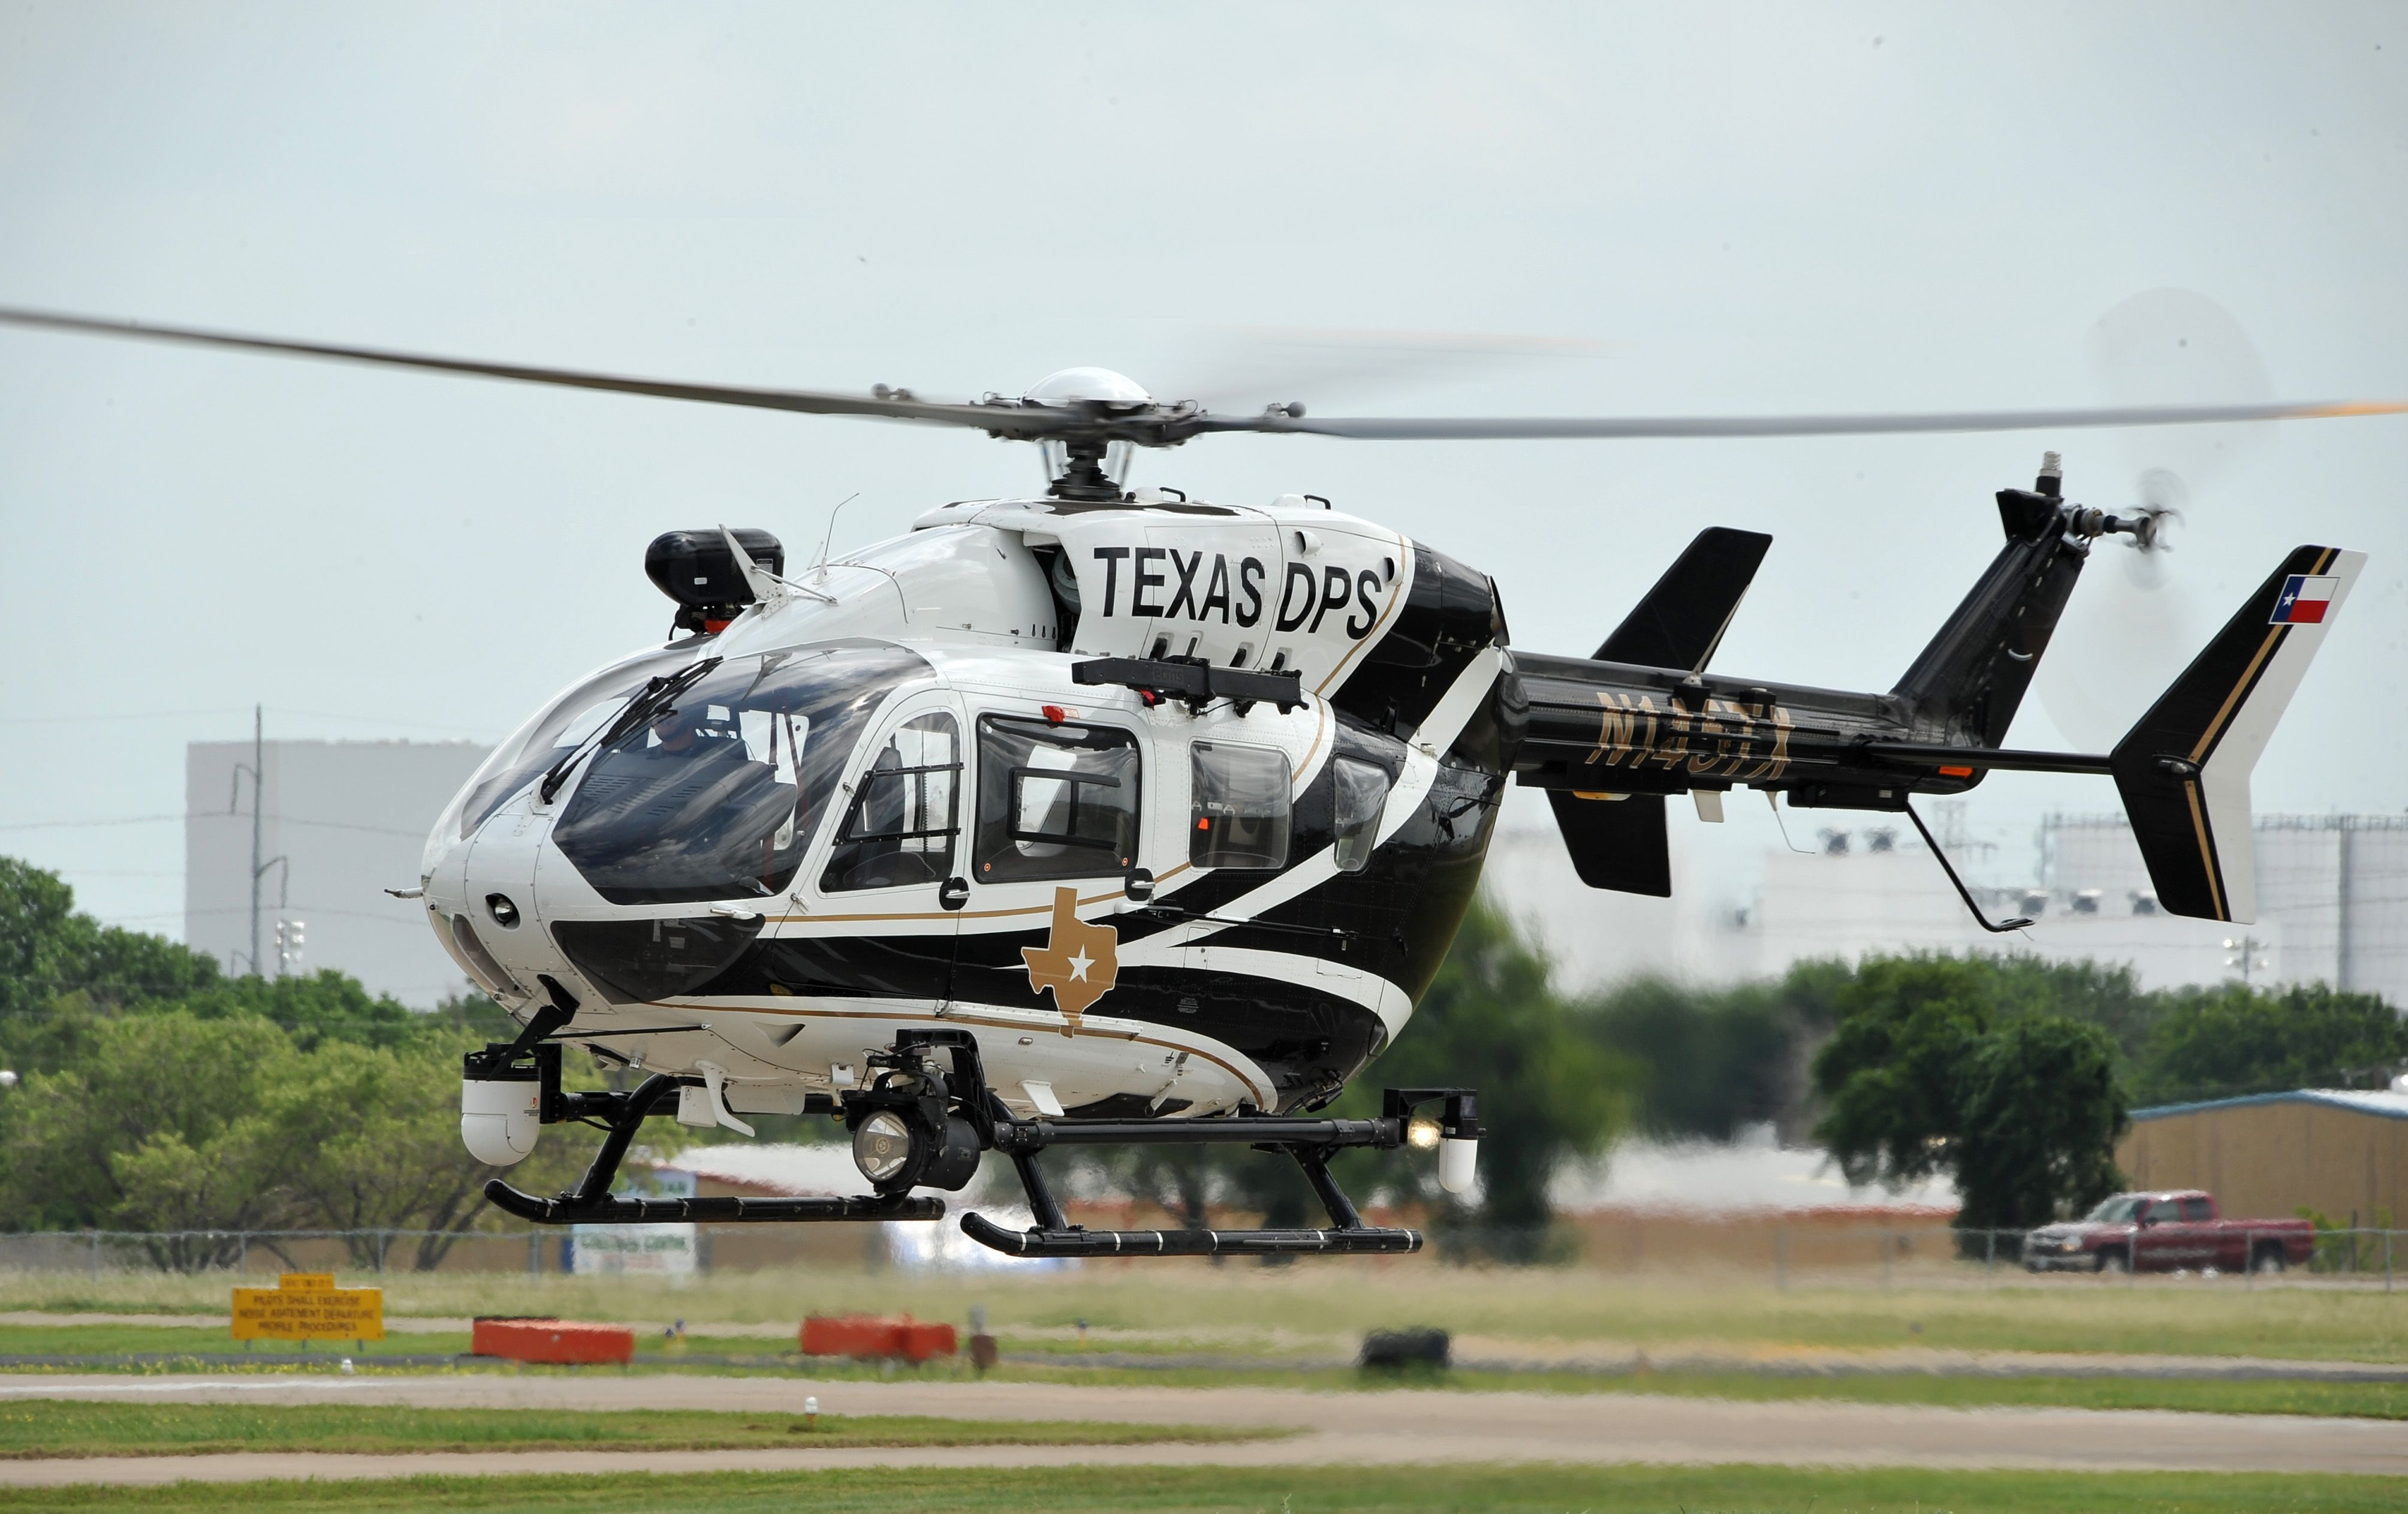 how work helicopter with 478155685409346616 on File G UHIH   72 21509 129 Bell UH 1H Iroquois  205   cn 13208  US Army   9436432746 besides 478155685409346616 also File boscastle raf seaking in addition 8022105560125575 further Fantasy 575.